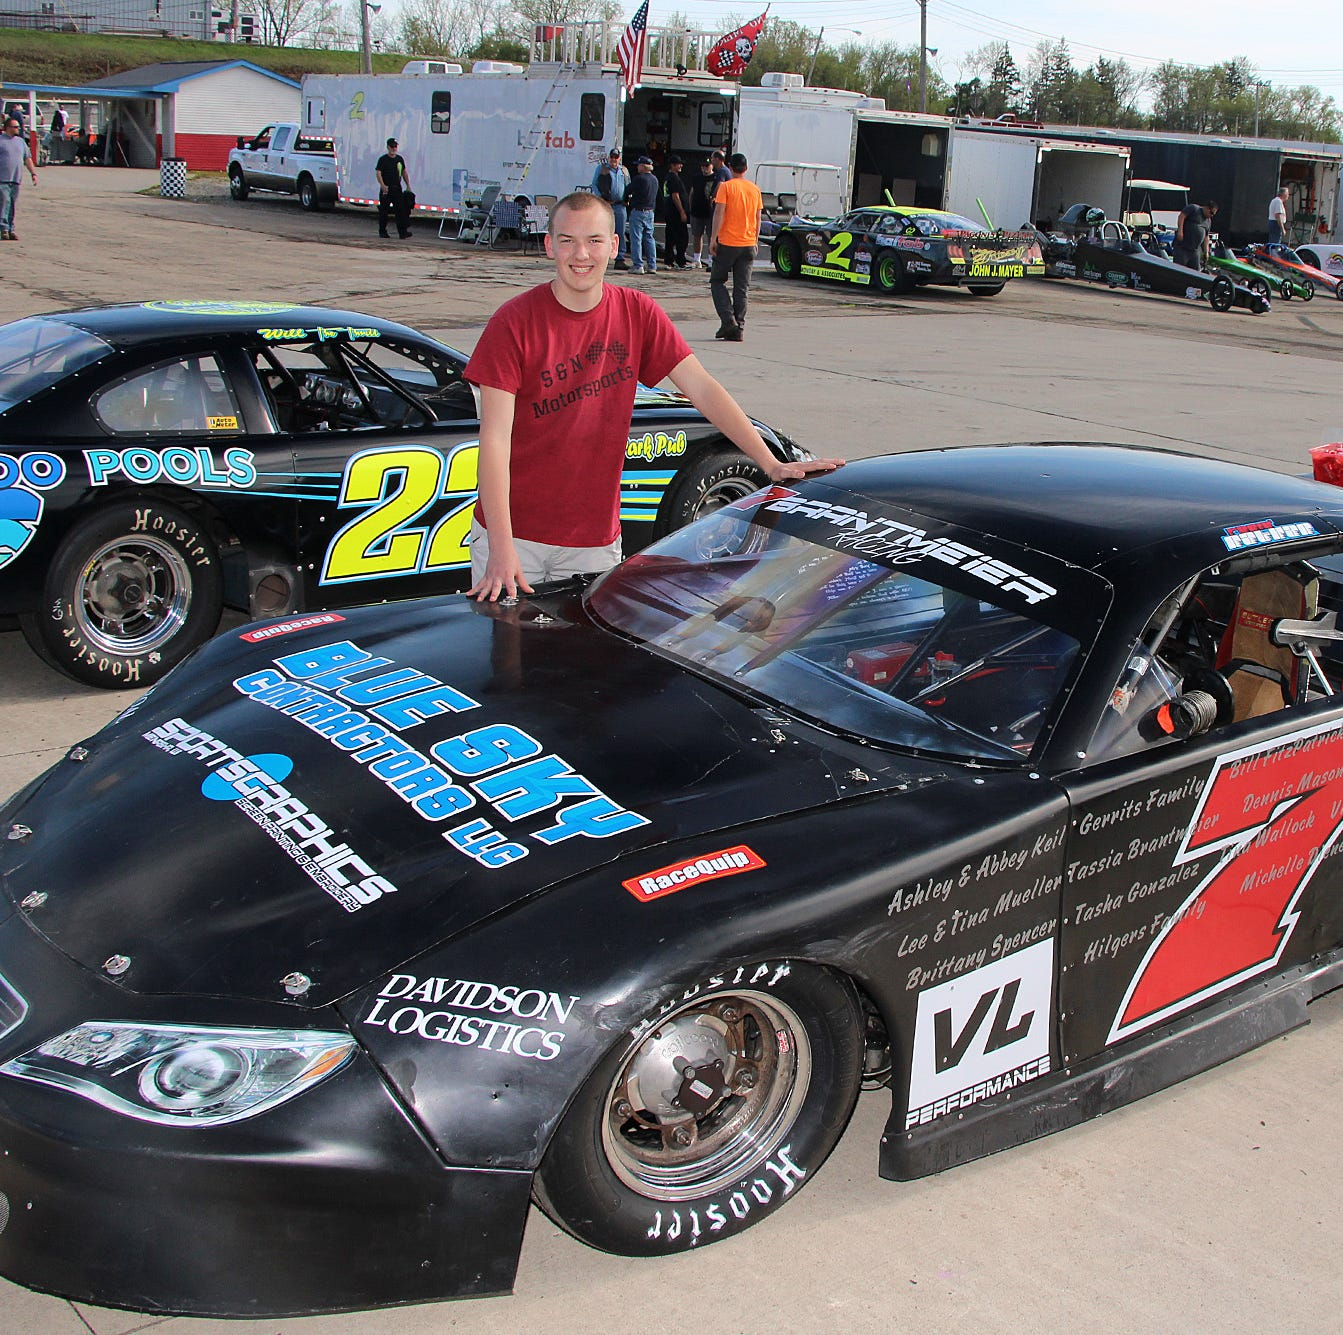 Brantmeier, 15, hoping to get up to speed in first season as late model racer at WIR